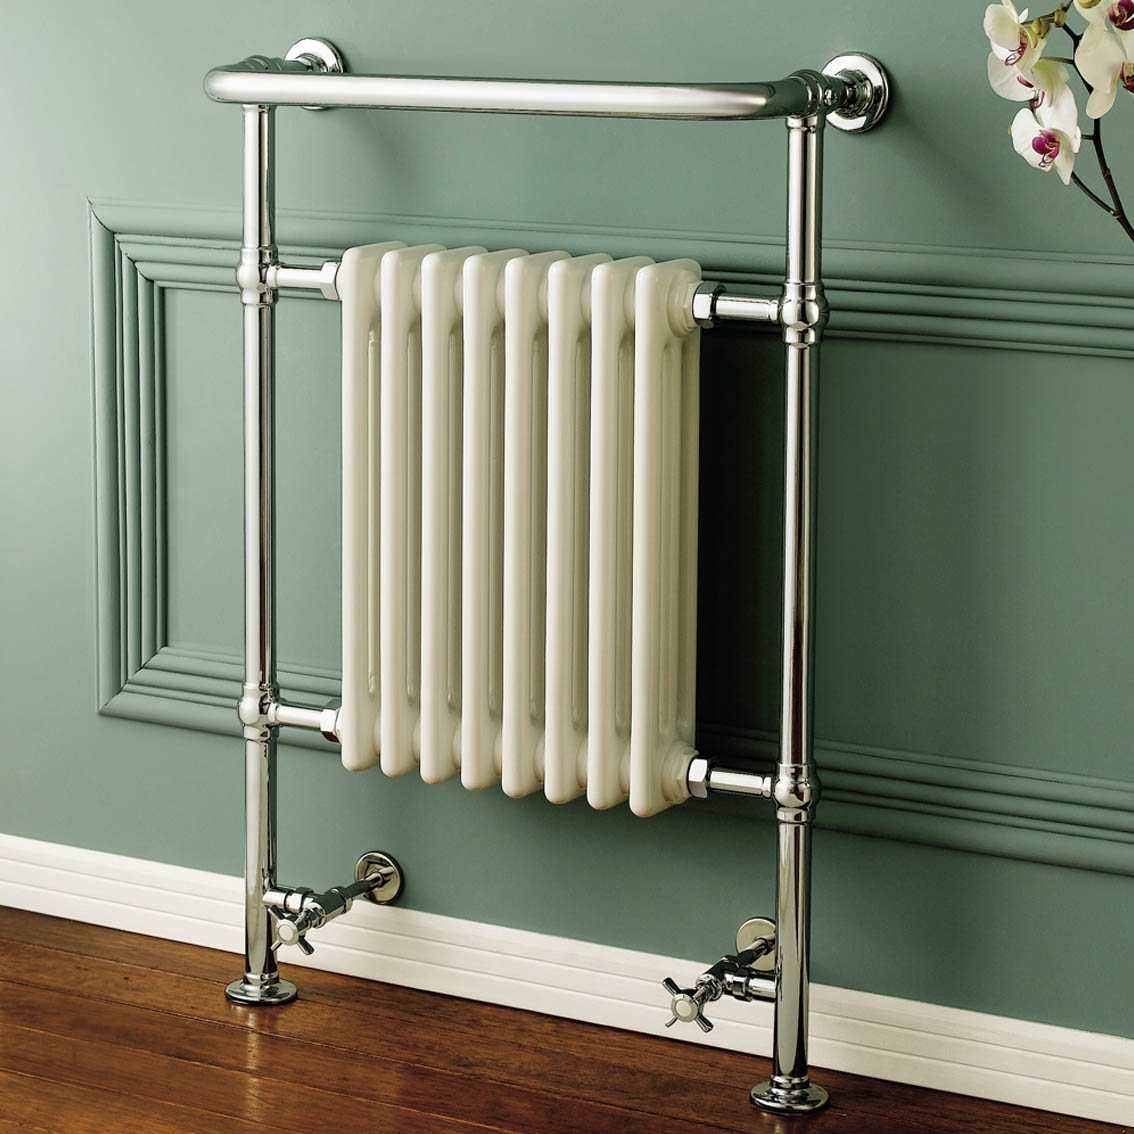 bathroom radiators going electric my decorative. Black Bedroom Furniture Sets. Home Design Ideas